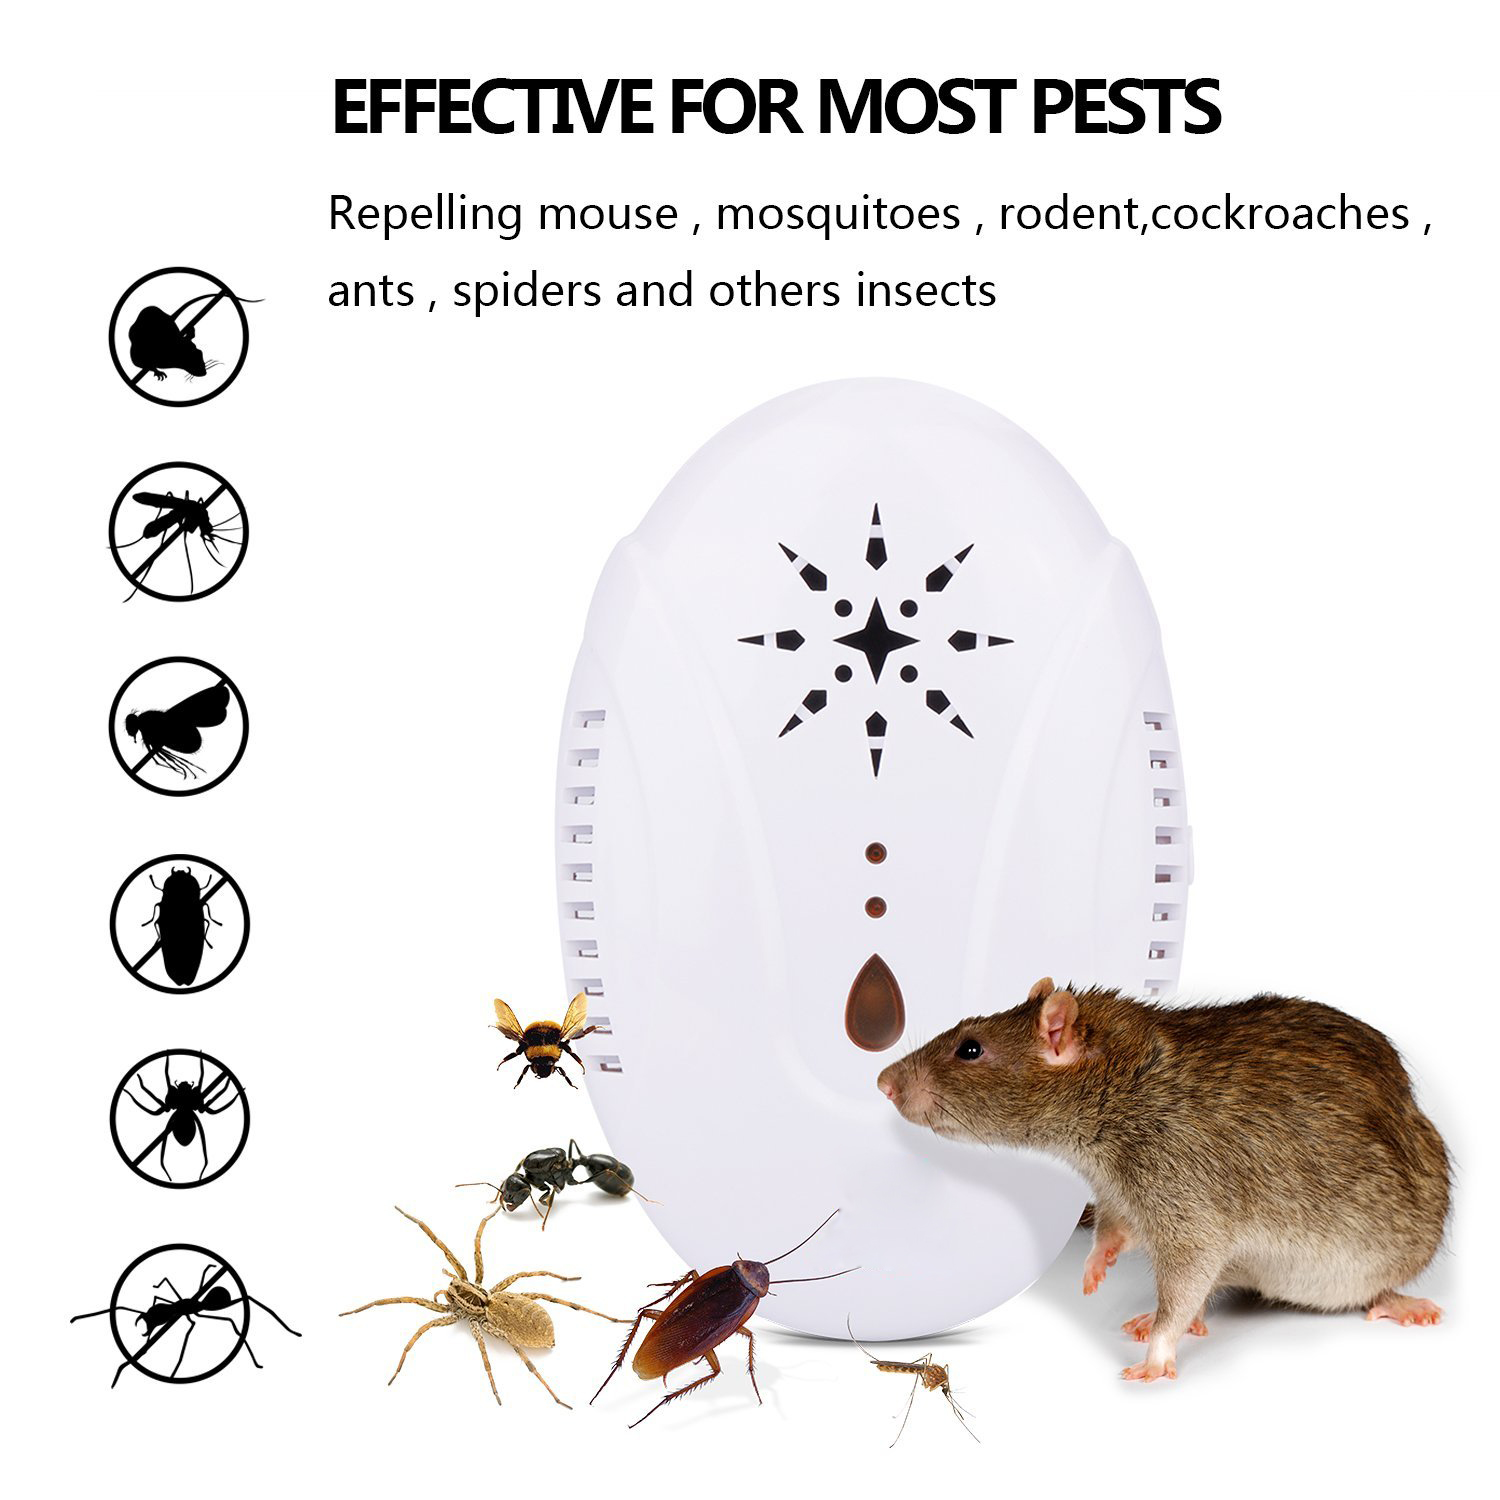 New Ultrasonic Insect Repellent US Plug 13.3X6.4X8.7cm Anti Mosquito For Home ABS Mosquito Killer Lamp For Garden-in Repellents from Home & Garden